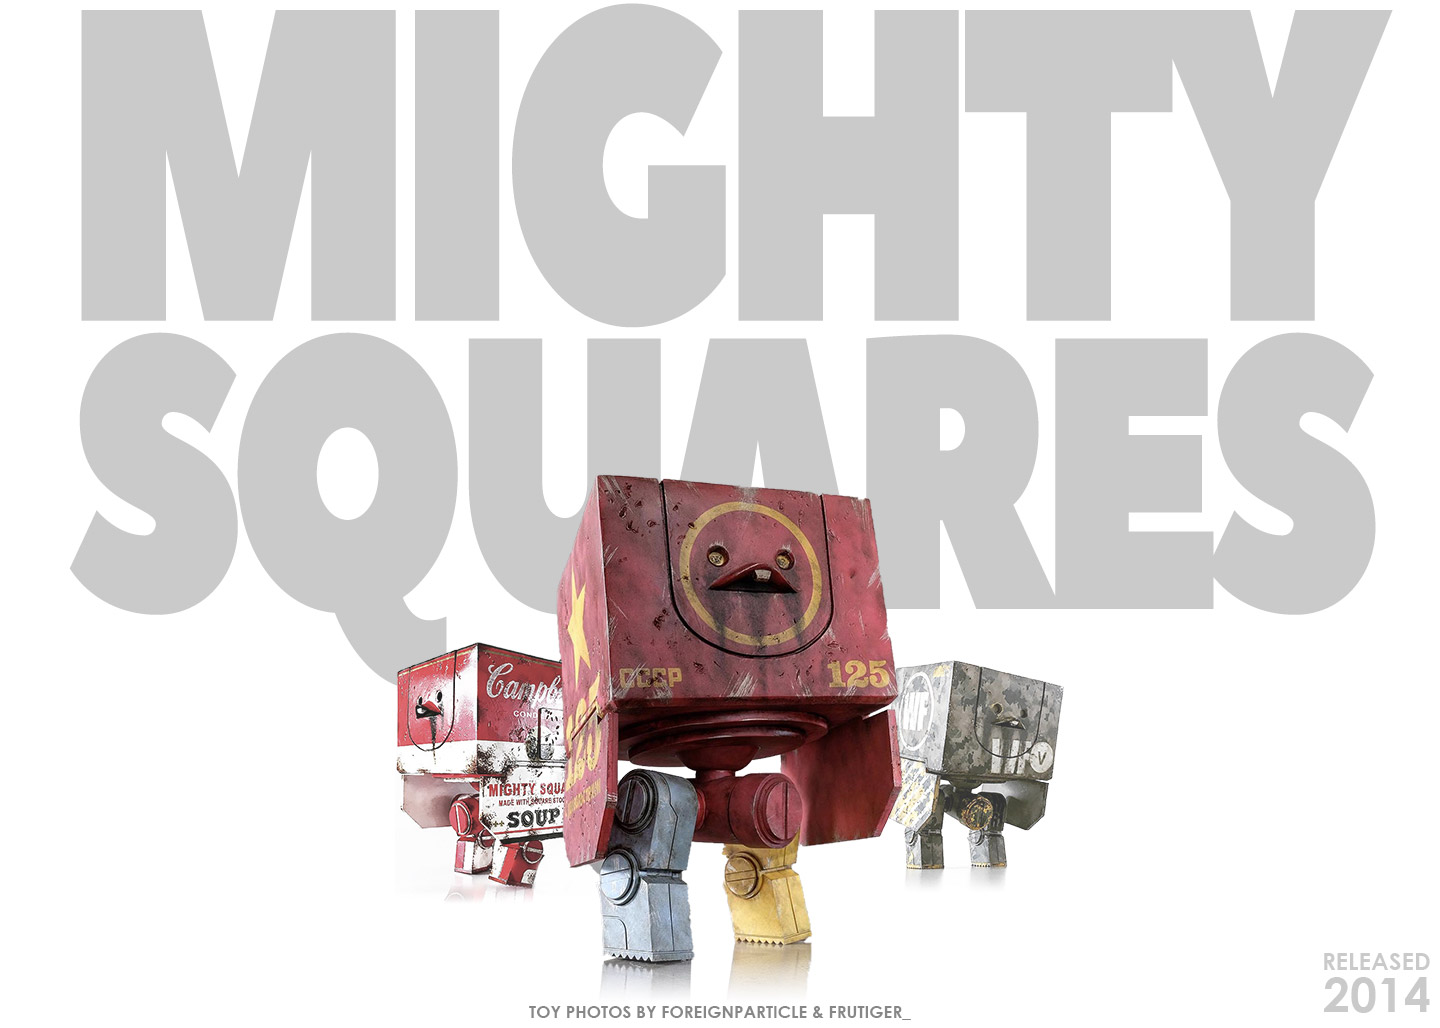 Mighty Squares by ThreeA, released 2014